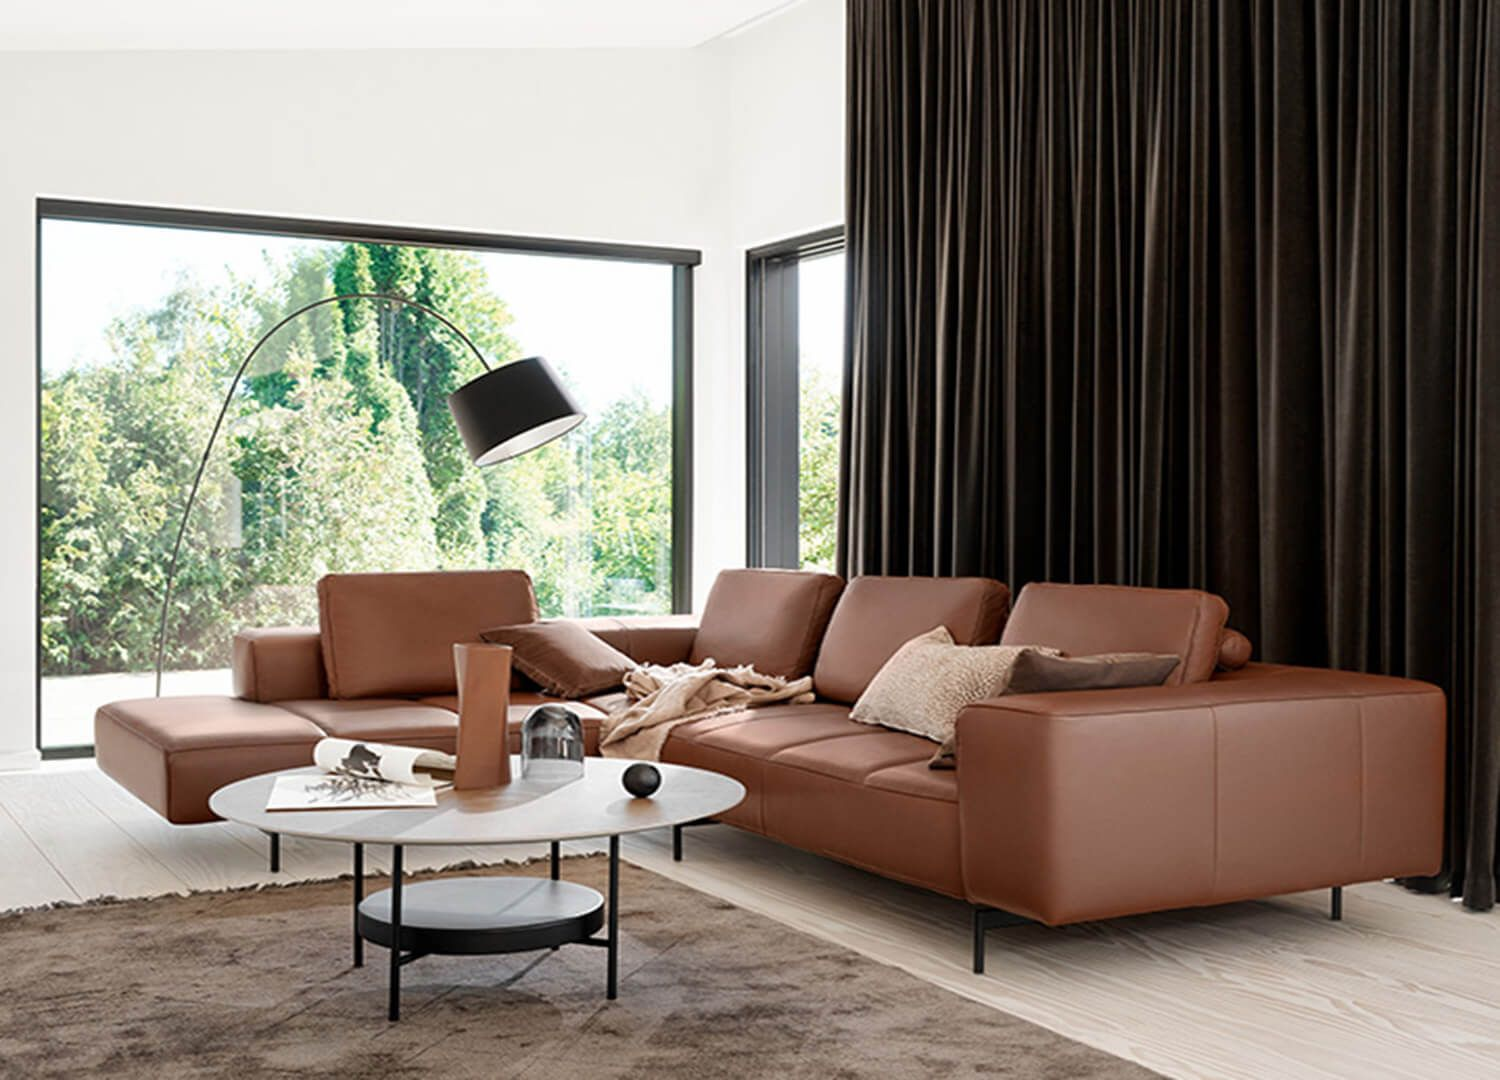 Madrid Coffee Table By Boconcept Est Living Design Directory Sofa Design Living Room Designs Living Design